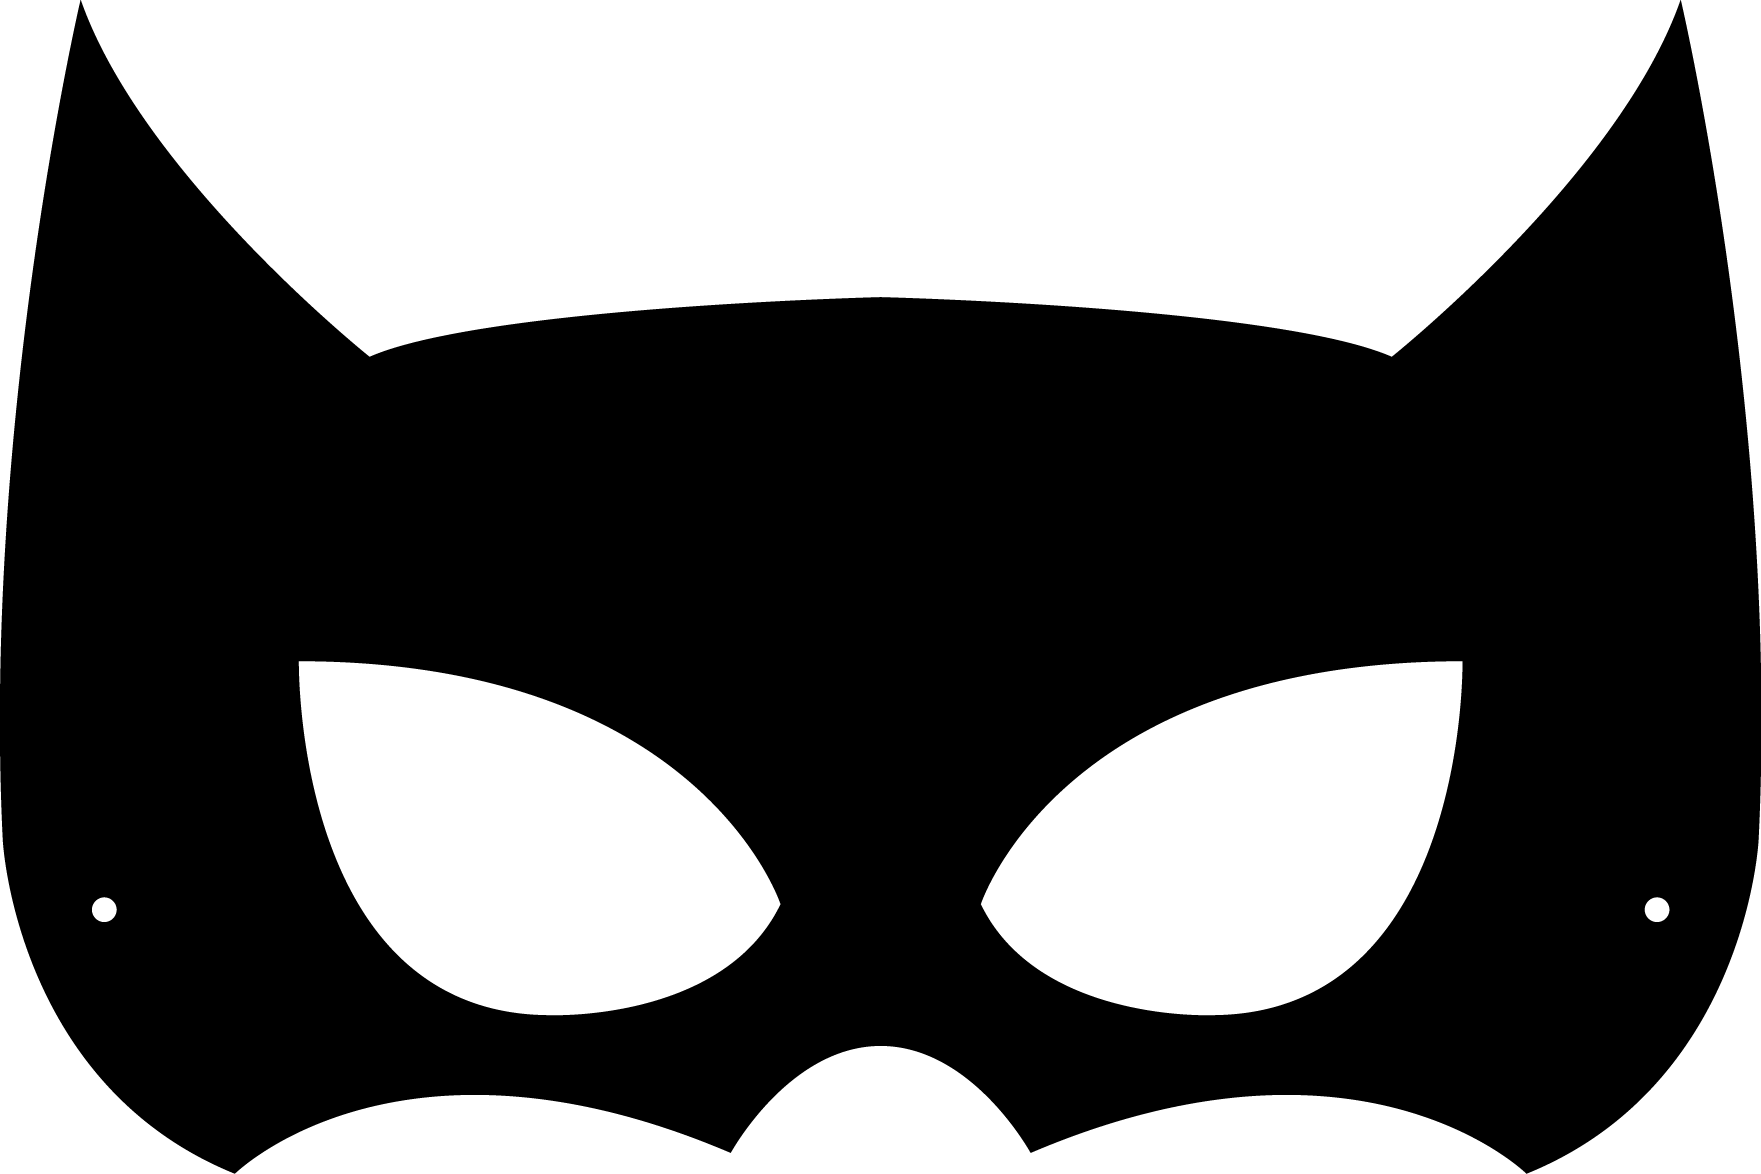 Mask clipart bat. Image result for batwoman